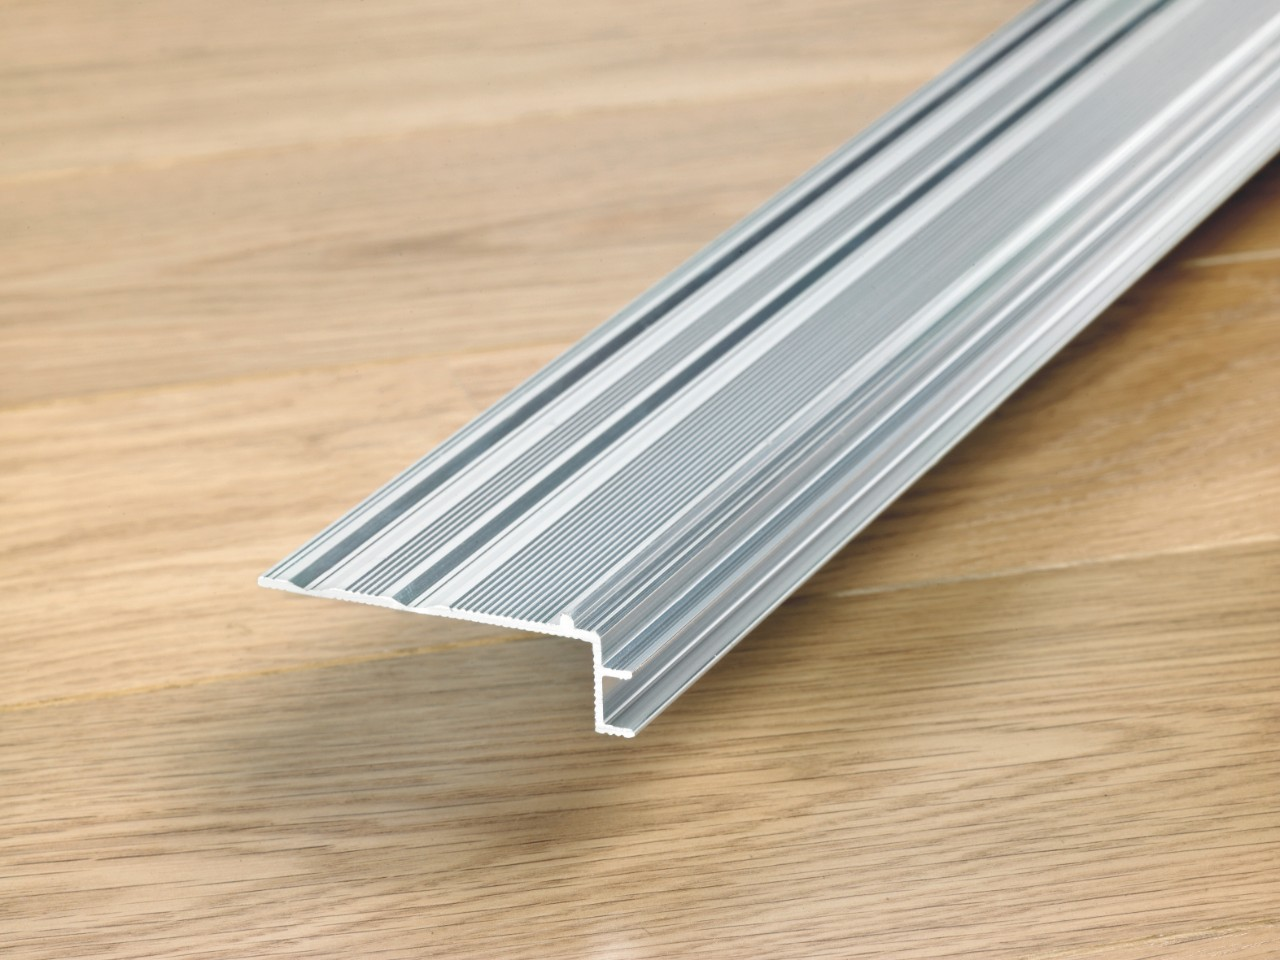 NEINCPBASE Laminate Accessories Quick-Step Incizo Stair Base for 12mm Laminate floors - 2.15m long NEINCPBASE7